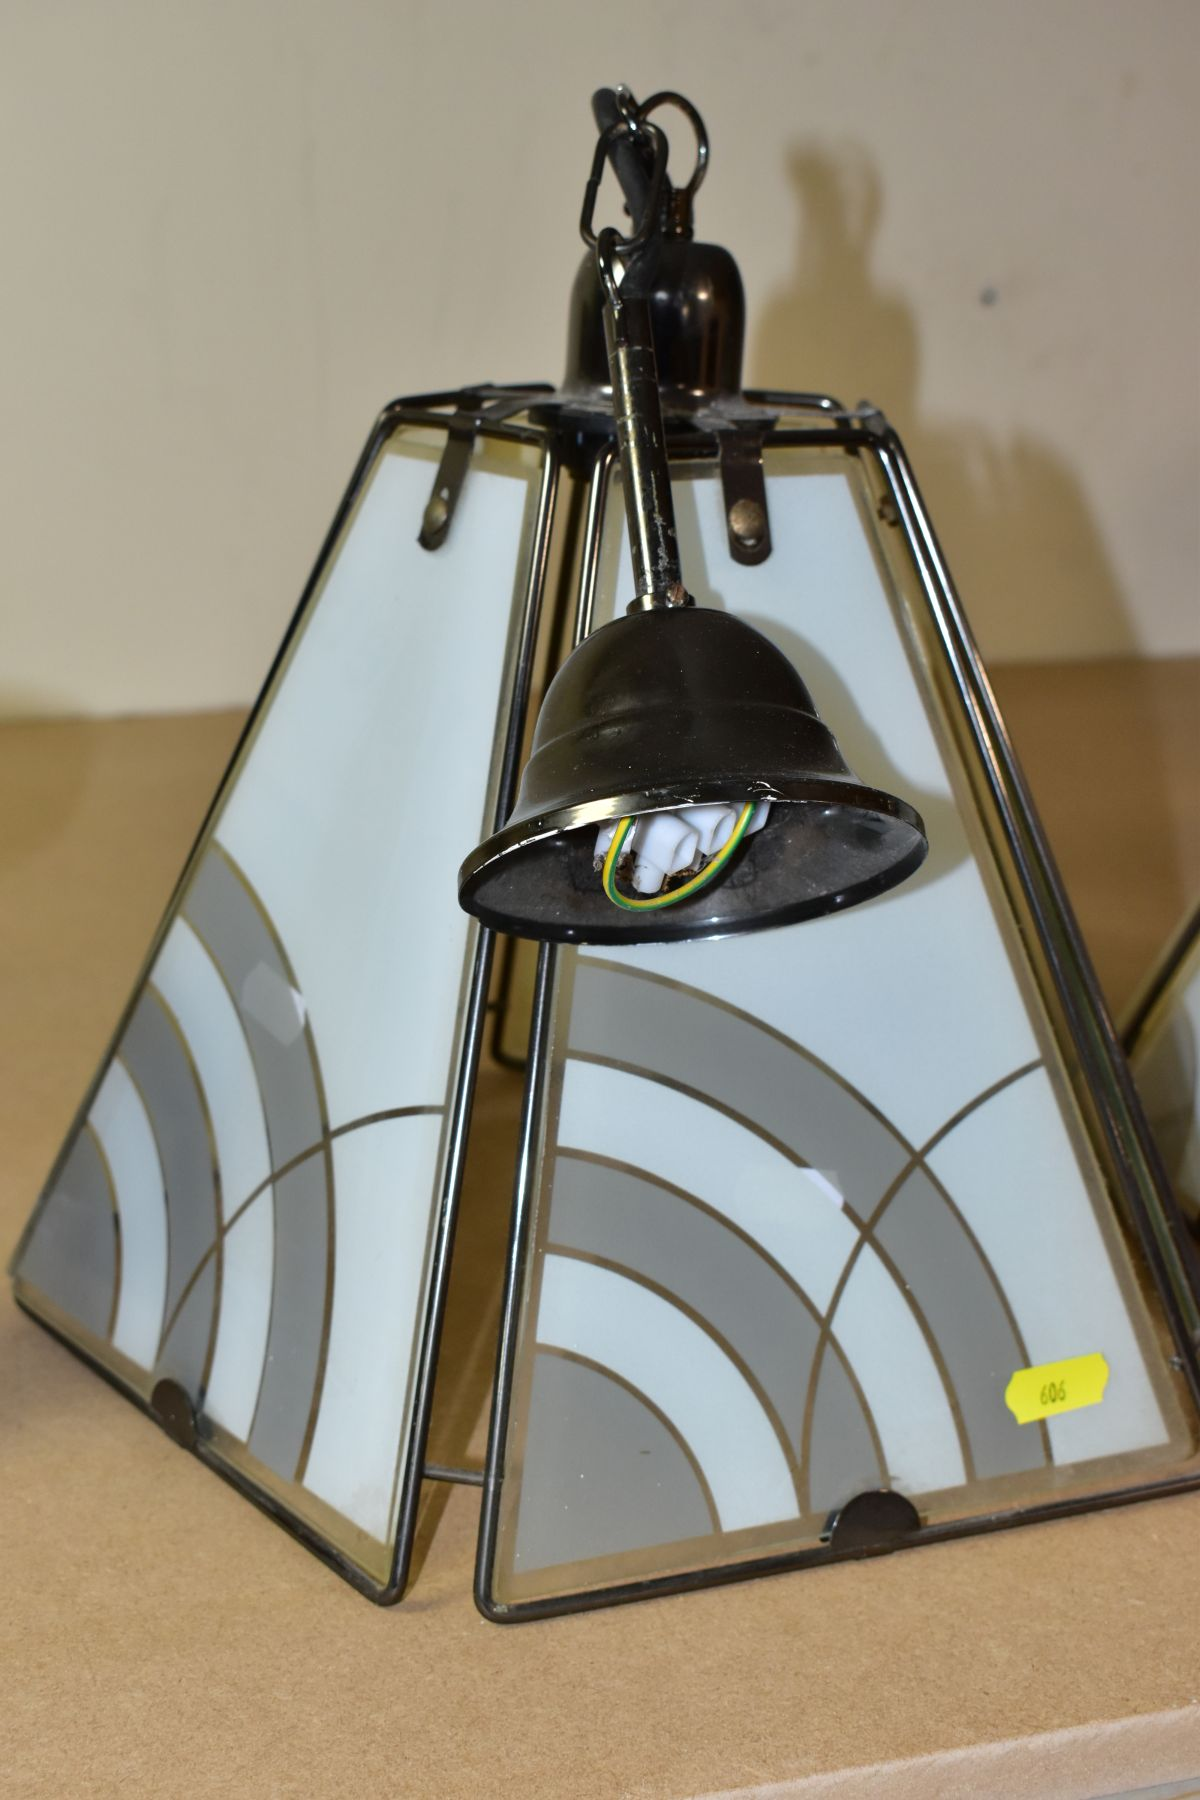 CEILING LIGHTS AND TABLE LAMP comprising a pair of pyramid shaped lamps with glass panels, - Image 2 of 6